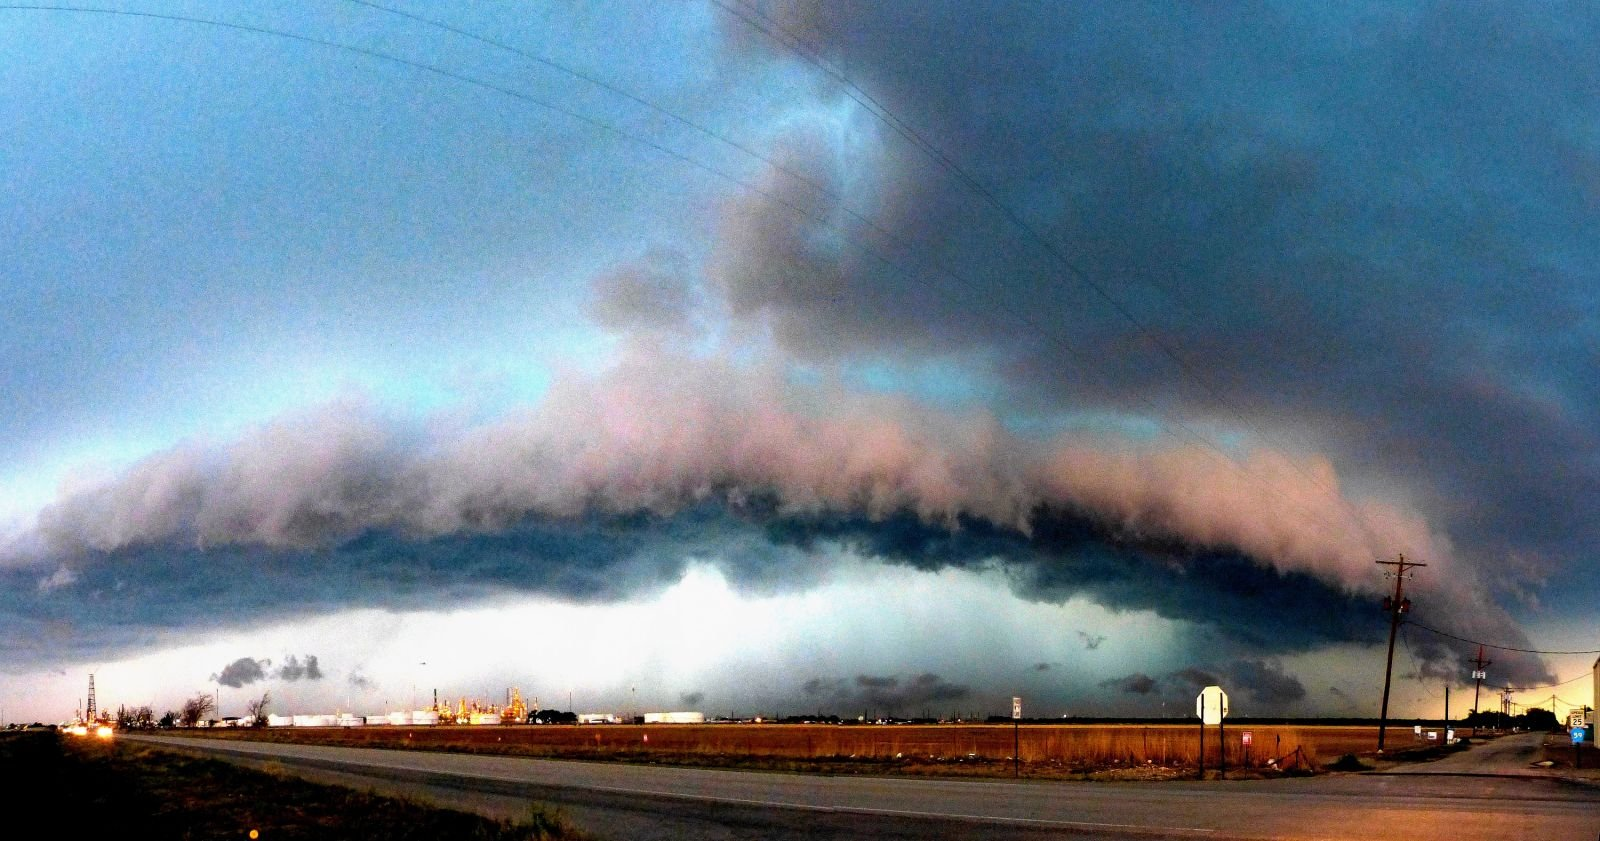 Amazing picture of Supercell over Artesia, NM